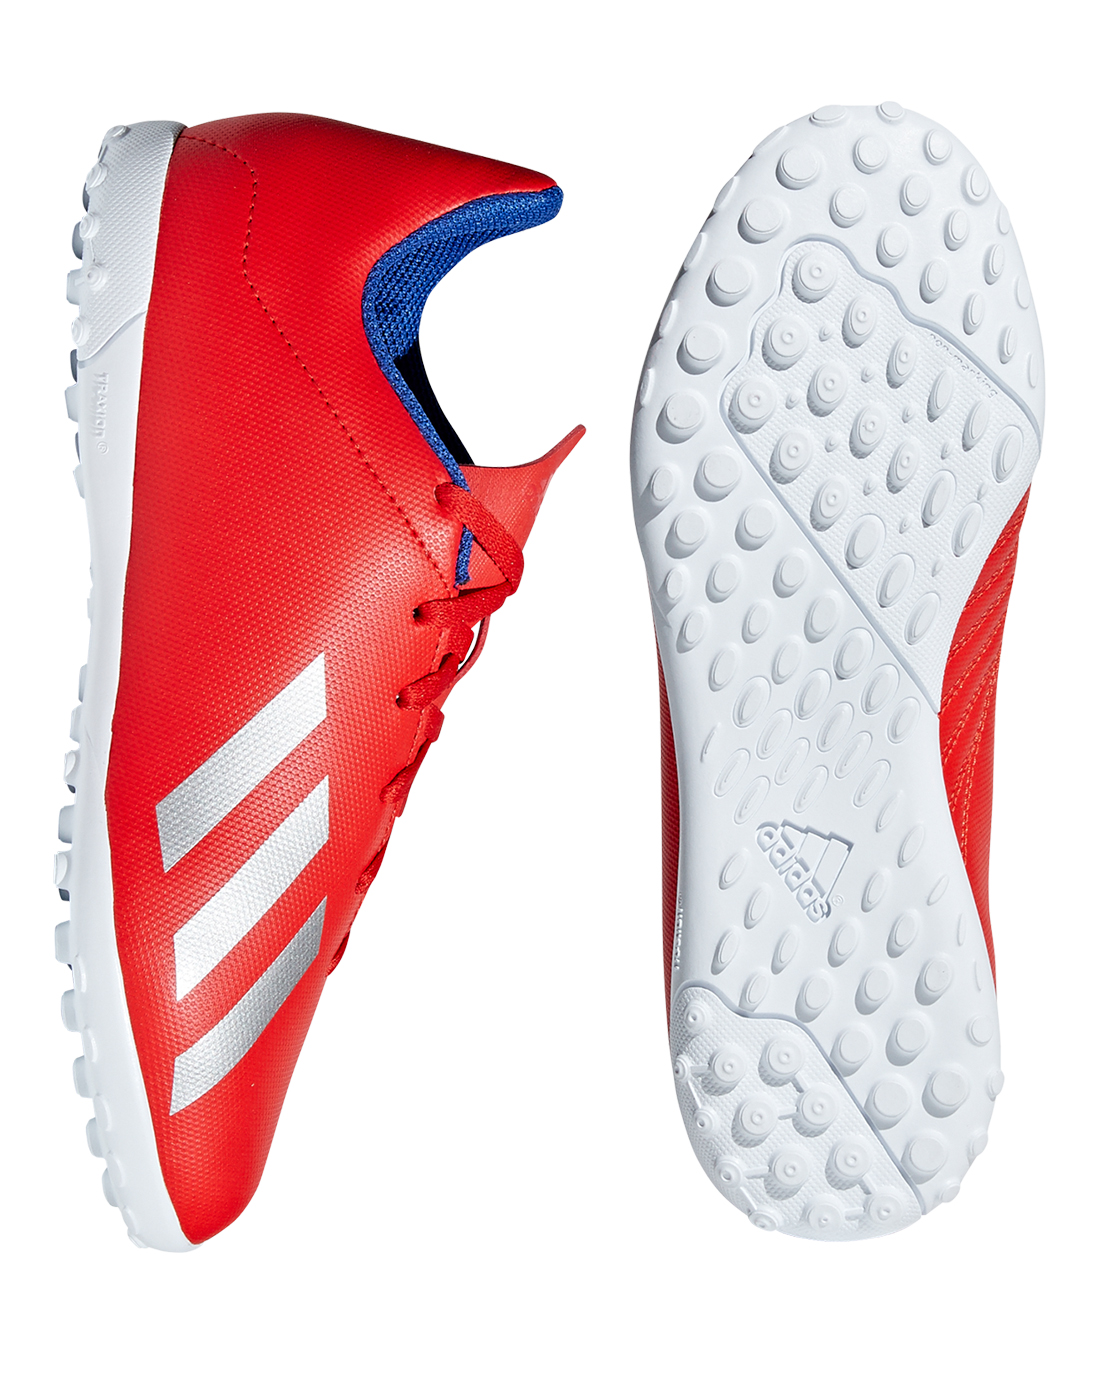 fa81a3f52 Kid's Red & White adidas X 18.4 Astro Boots   Life Style Sports